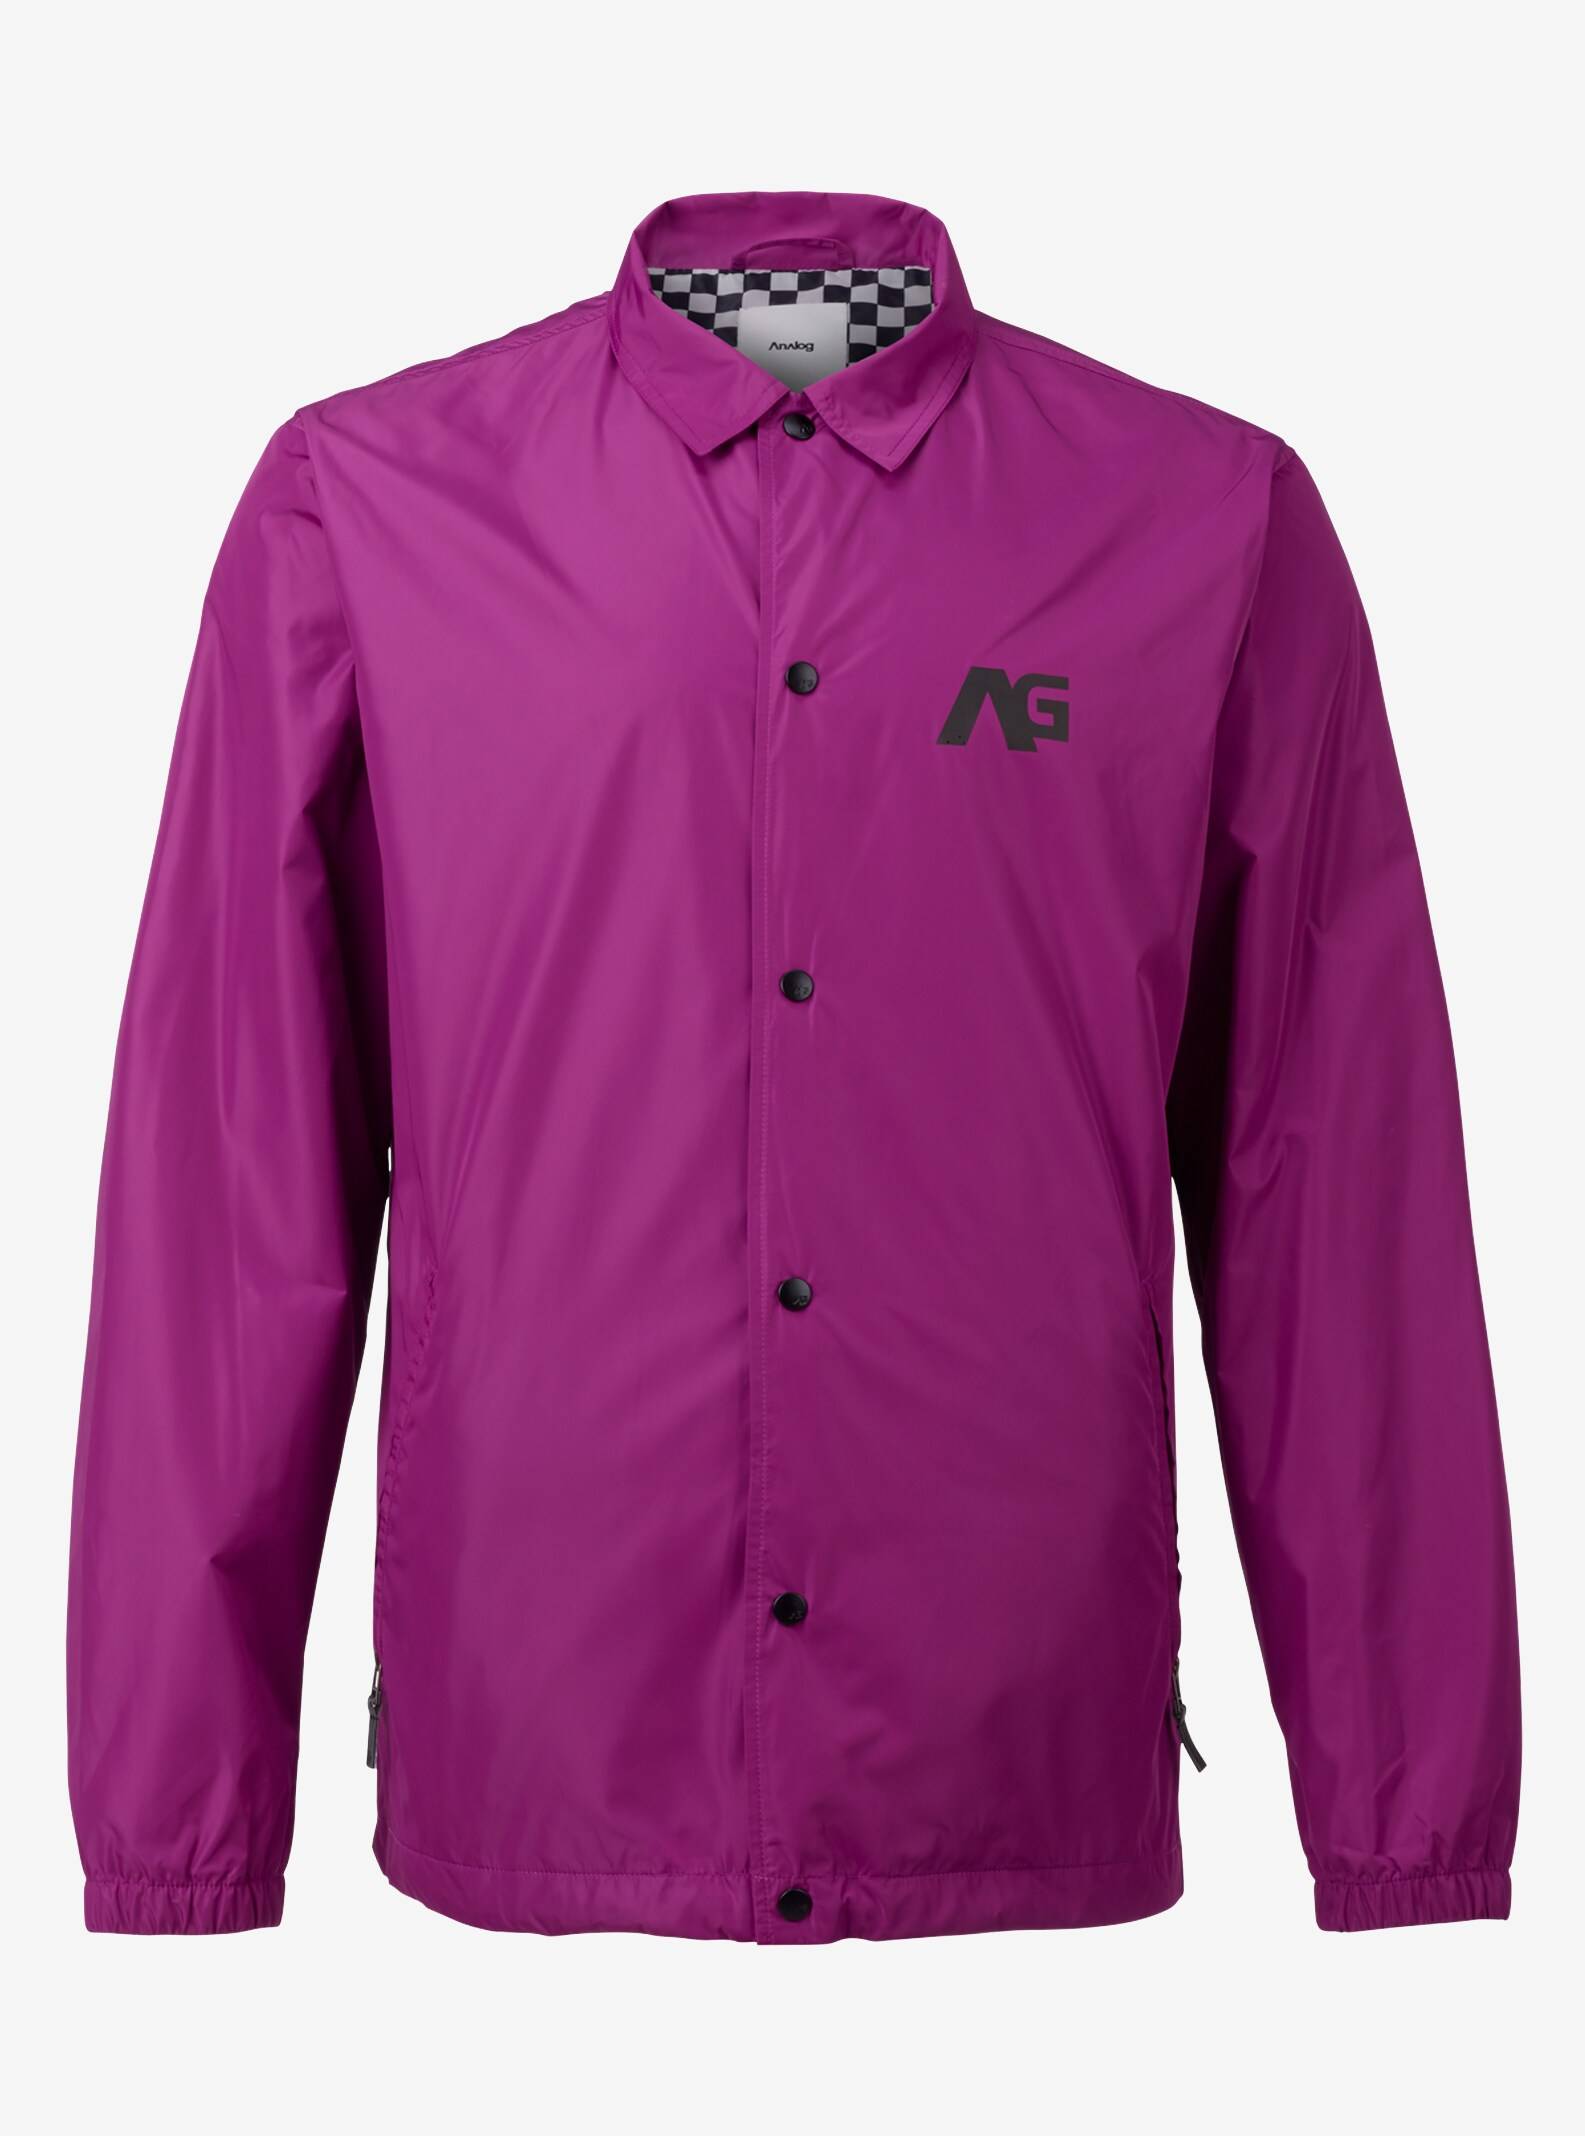 Men's Analog Campton Coaches Jacket shown in Grapeseed